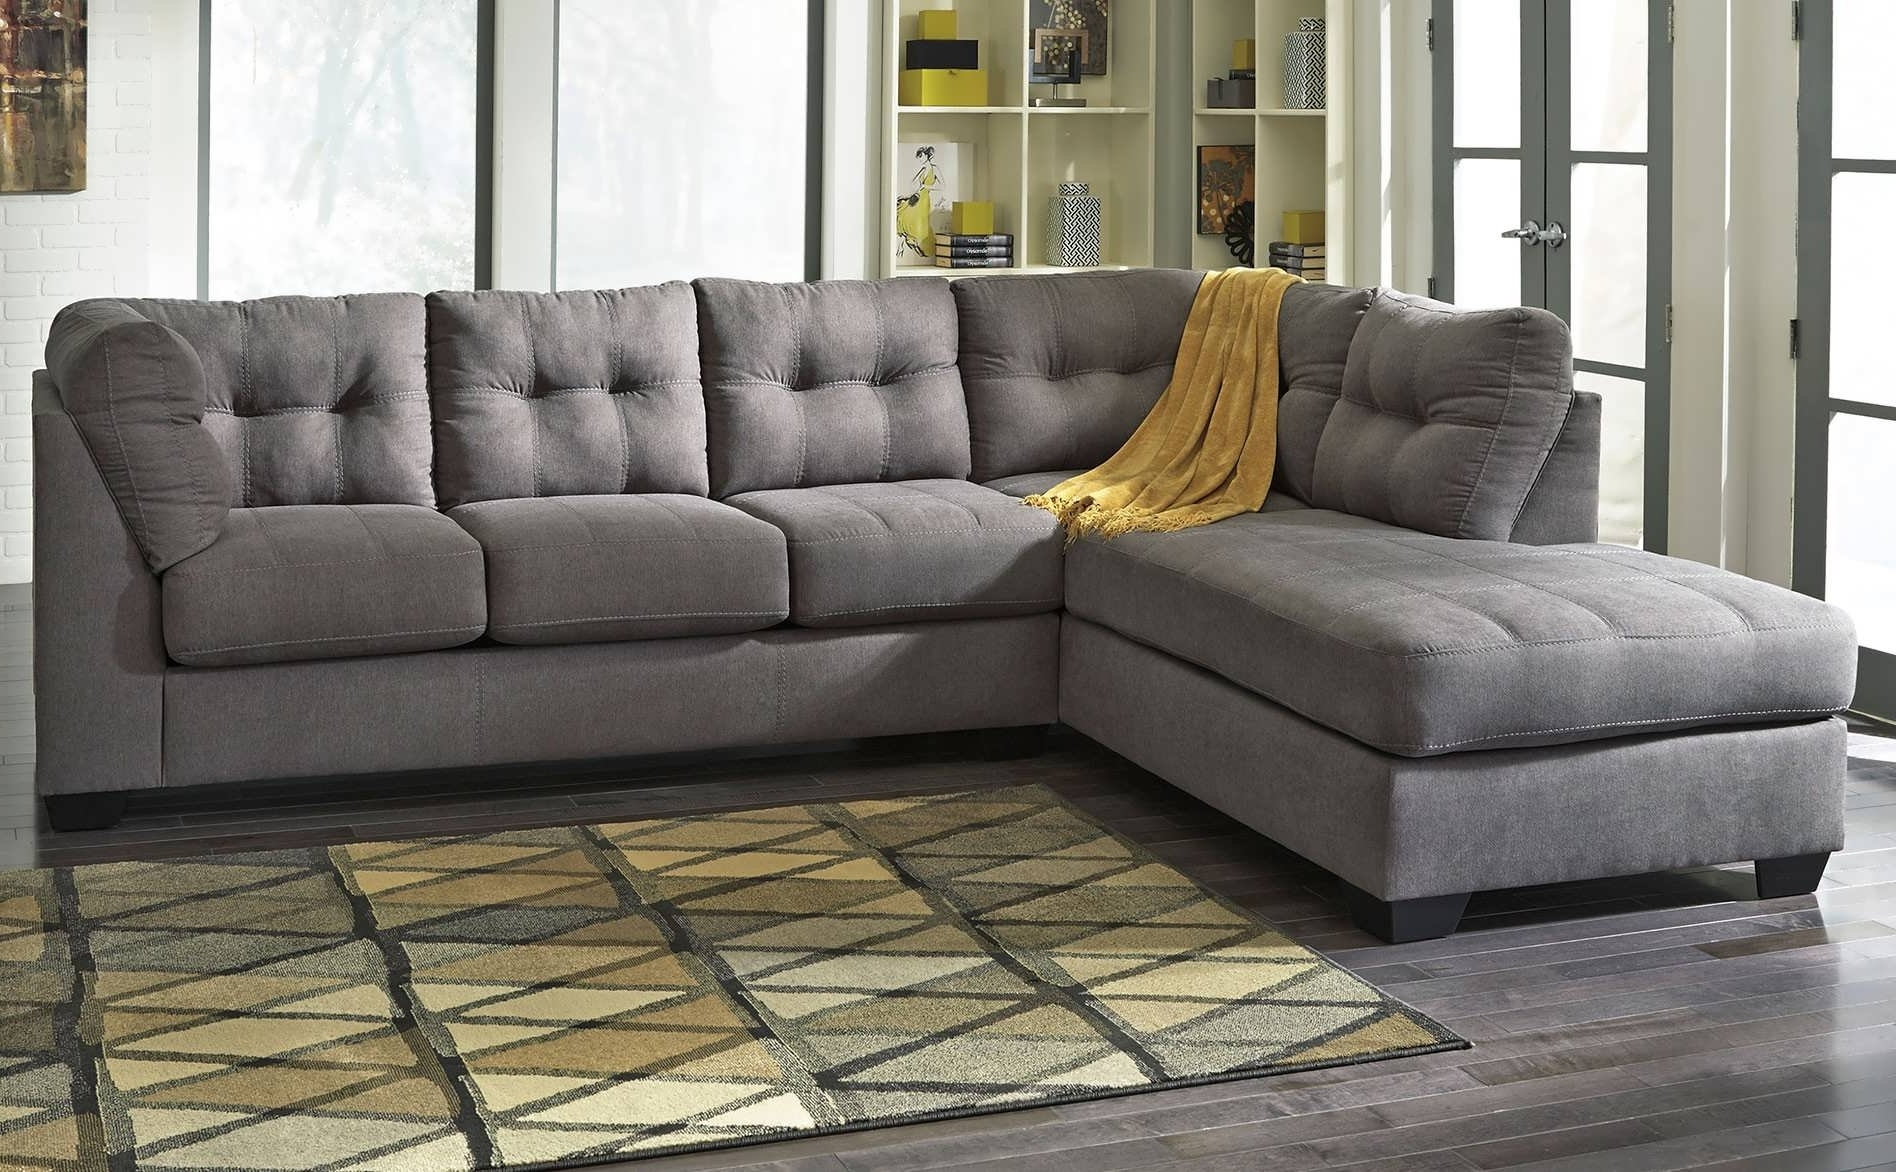 Gray Sectional Sofas With Chaise Within Most Up To Date Sofa : Small Gray Sectional Gray Sectional With Chaise Grey (Gallery 3 of 15)